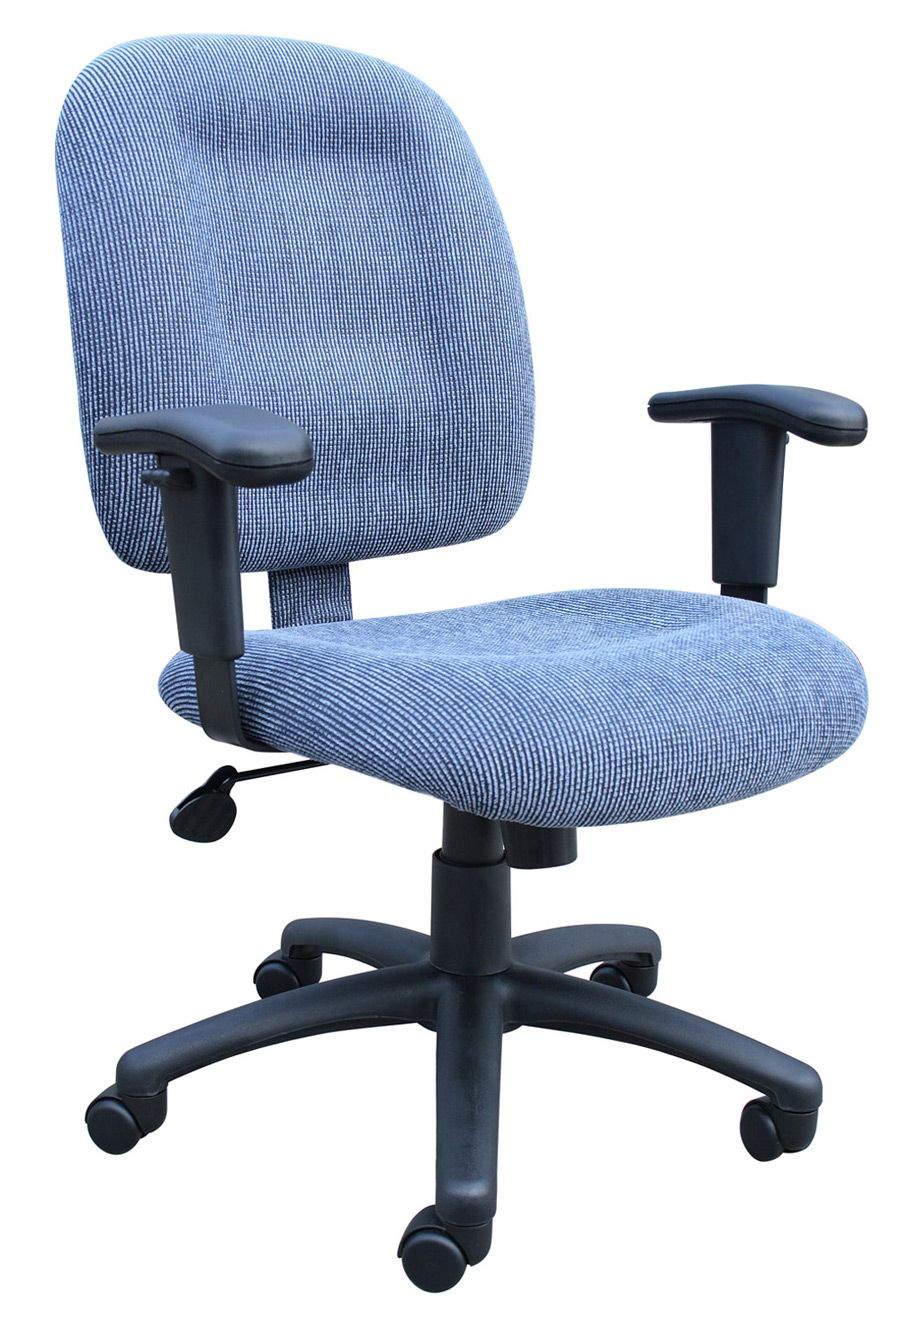 Sky Blue Ergonomic Fabric Task Office Chairs With Adjustable Arms$131.99